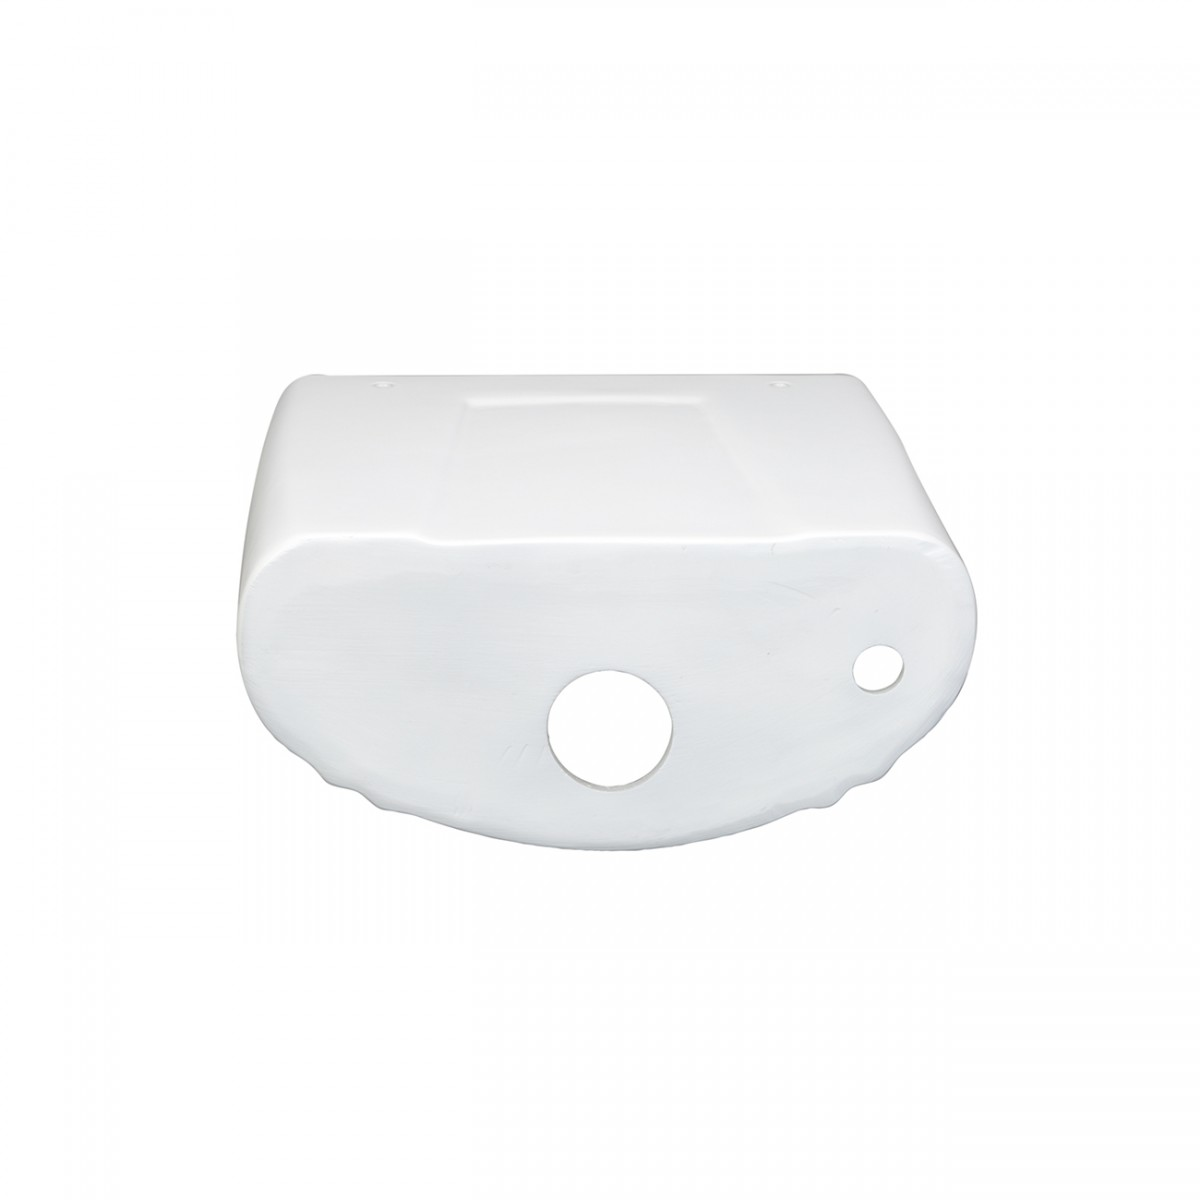 High Tank Toilet Parts Replacement Toilet Tank Replacement Tank For High Tank Toilet